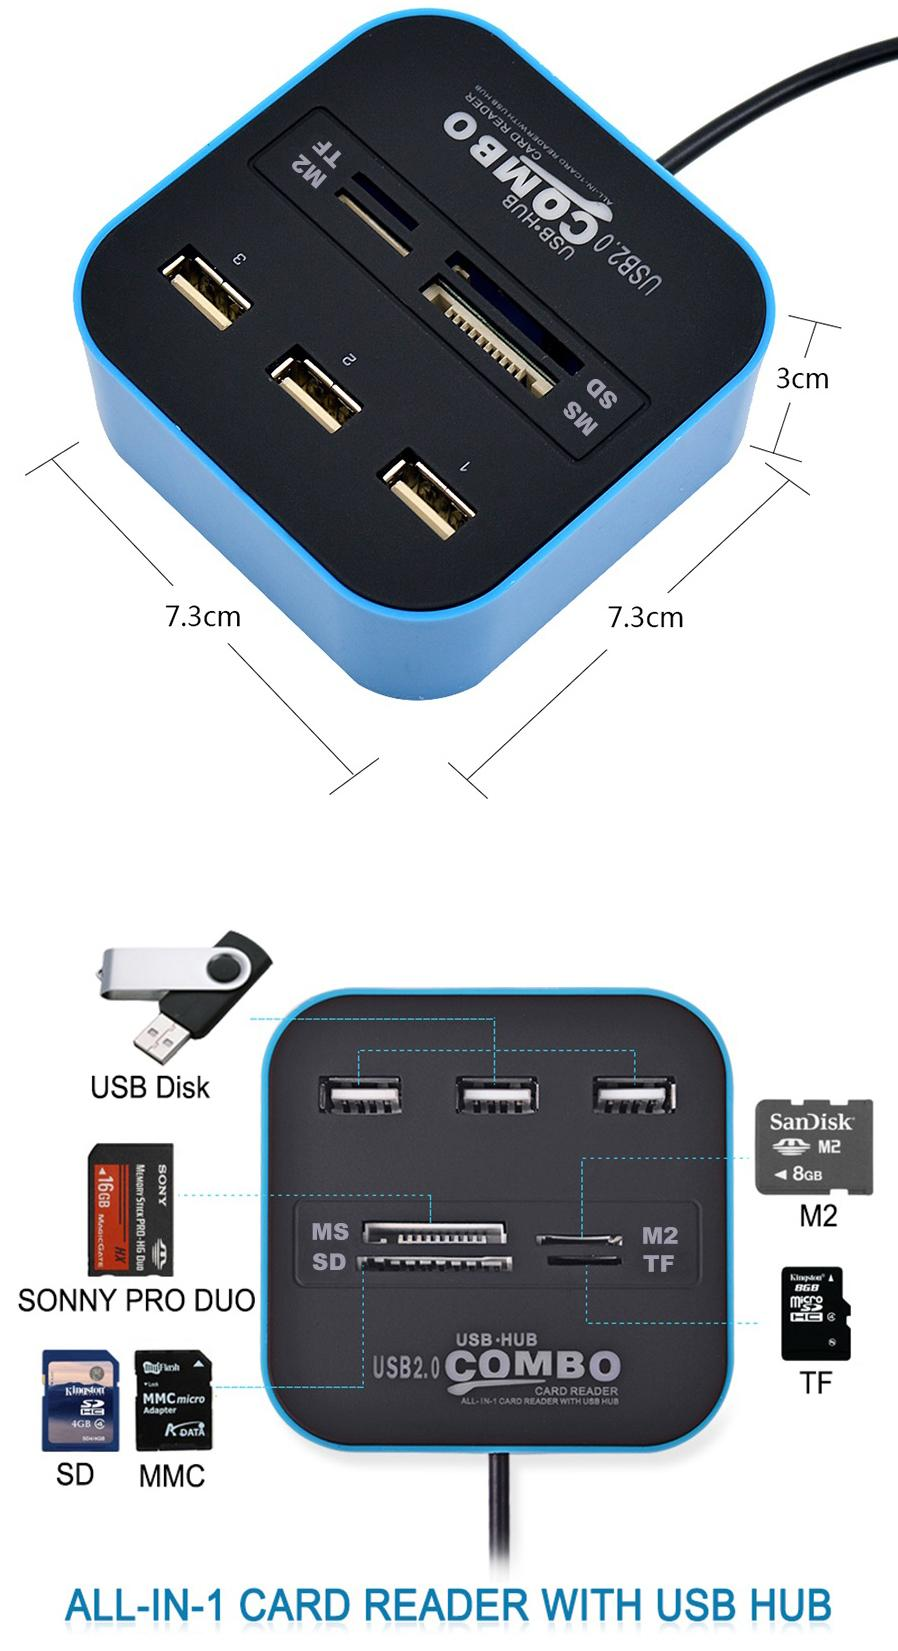 Image result for All-In-One USB 2.0 Hub / Card Reader